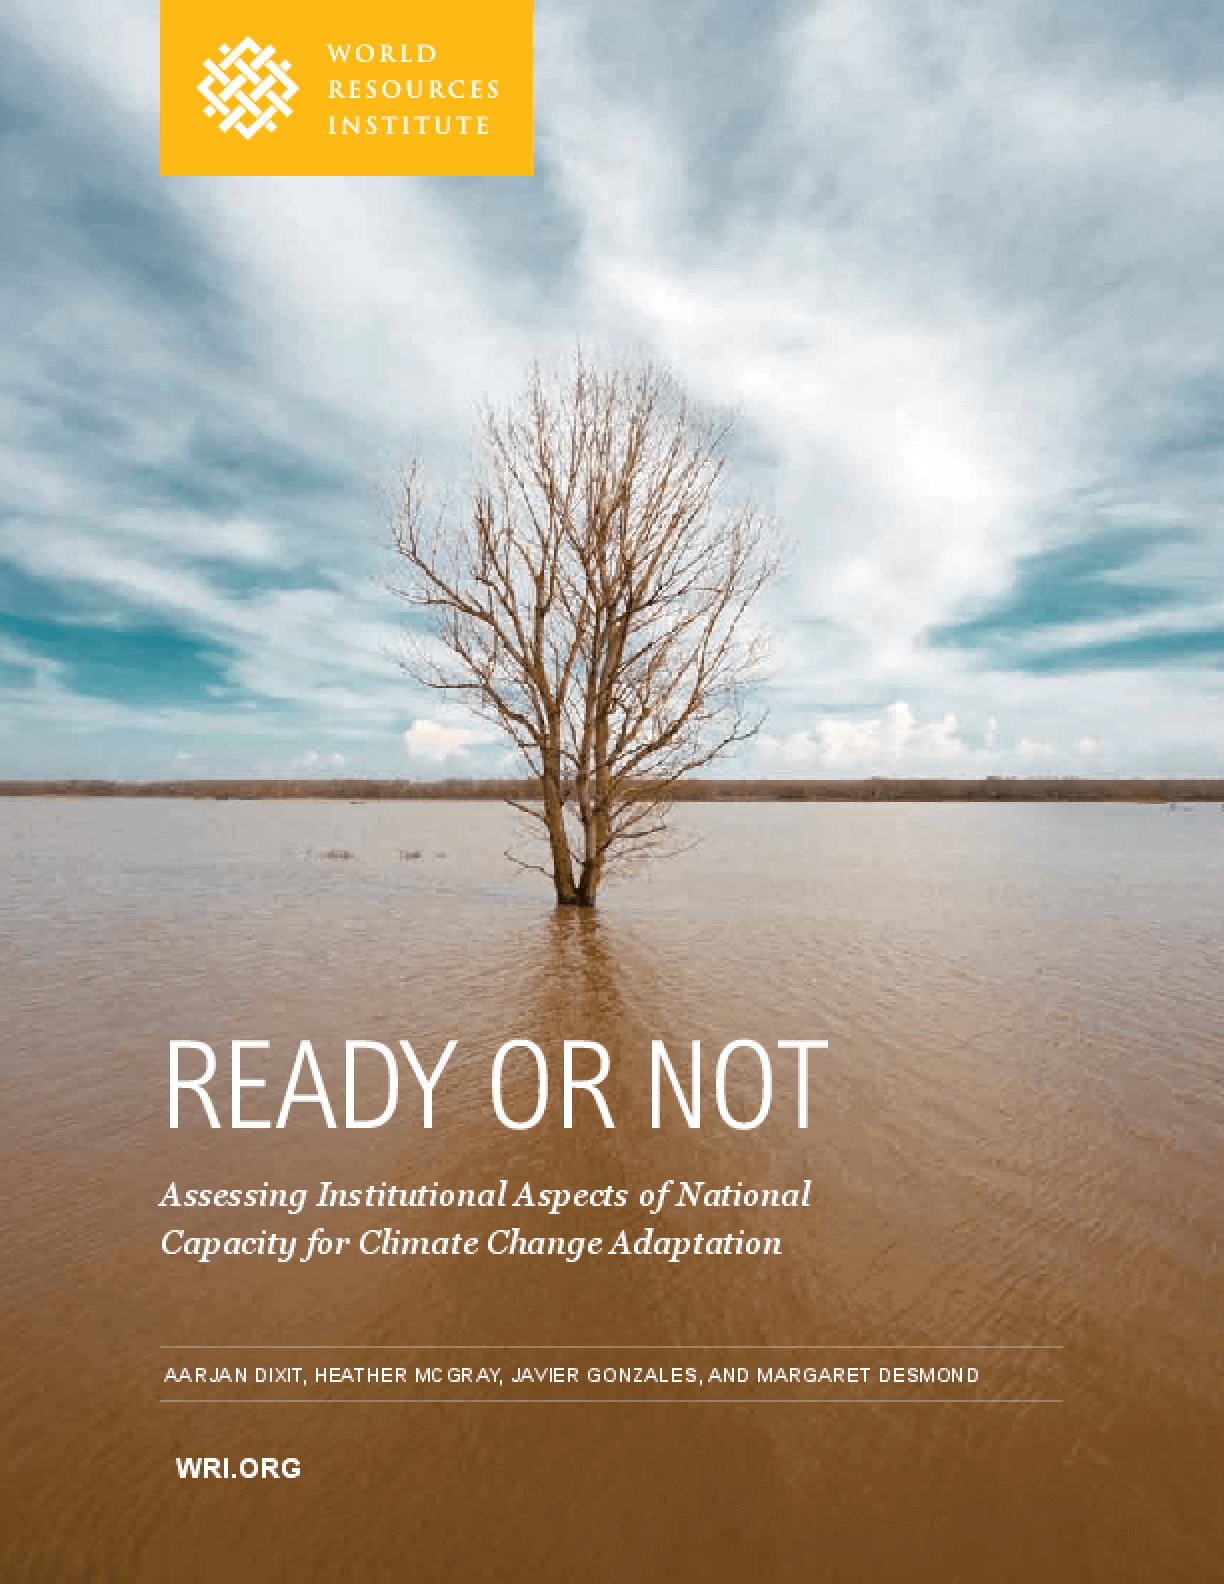 Ready or Not: Assessing National Institutional Capacity for Climate Change Adaptation